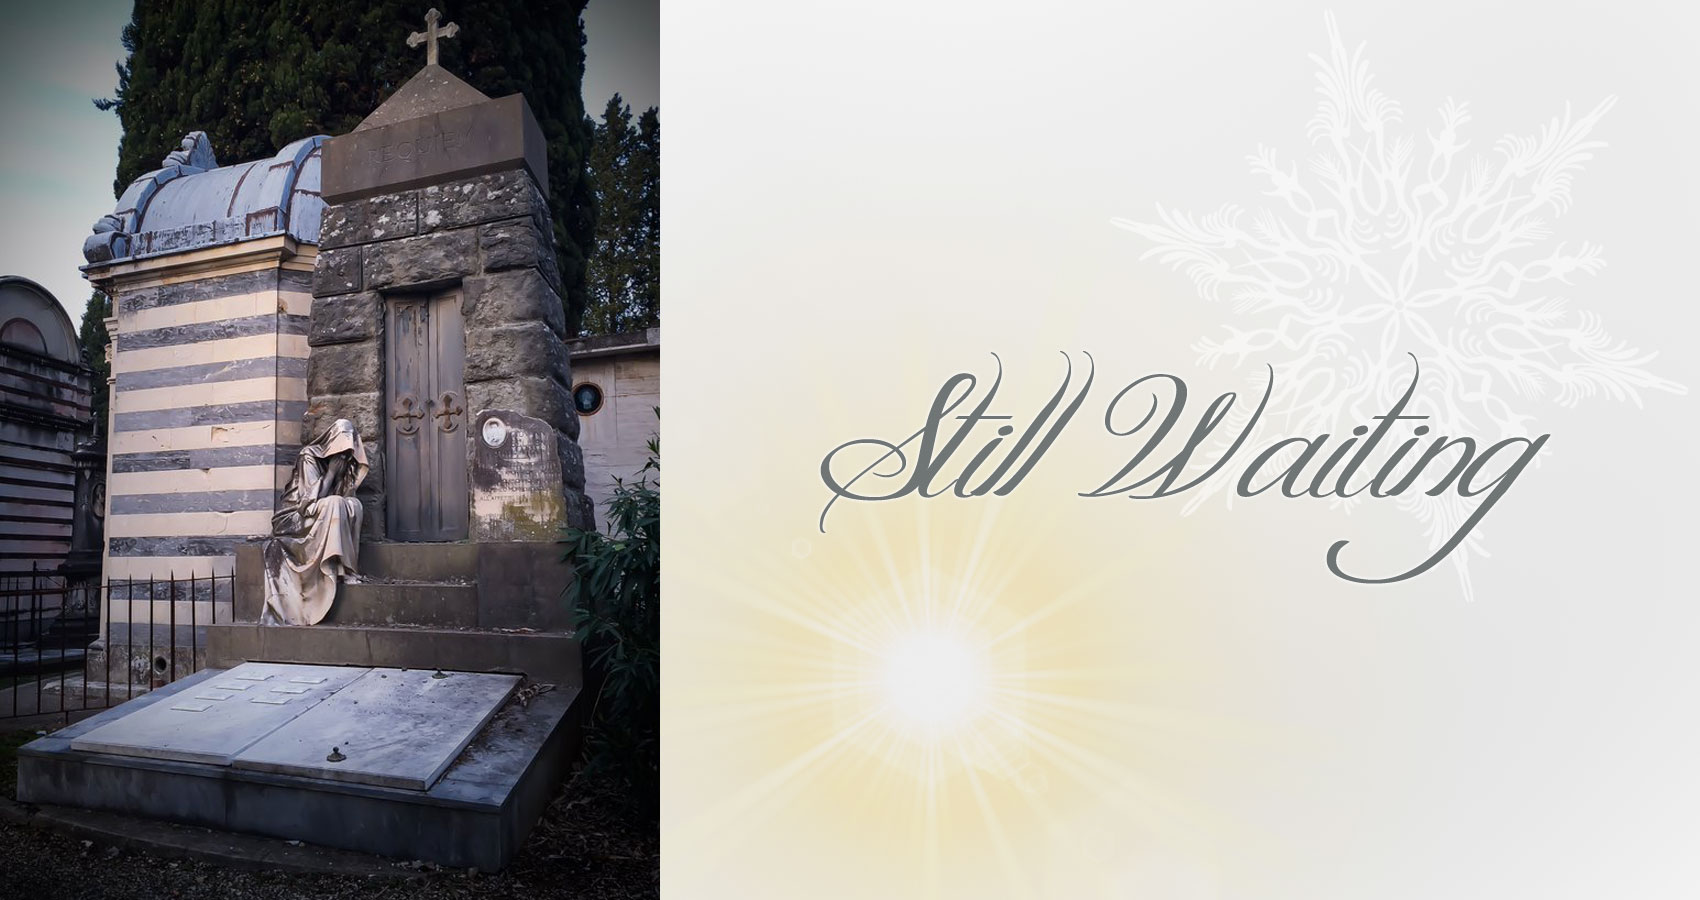 Still Waiting by Florence At Night at Spillwords.com